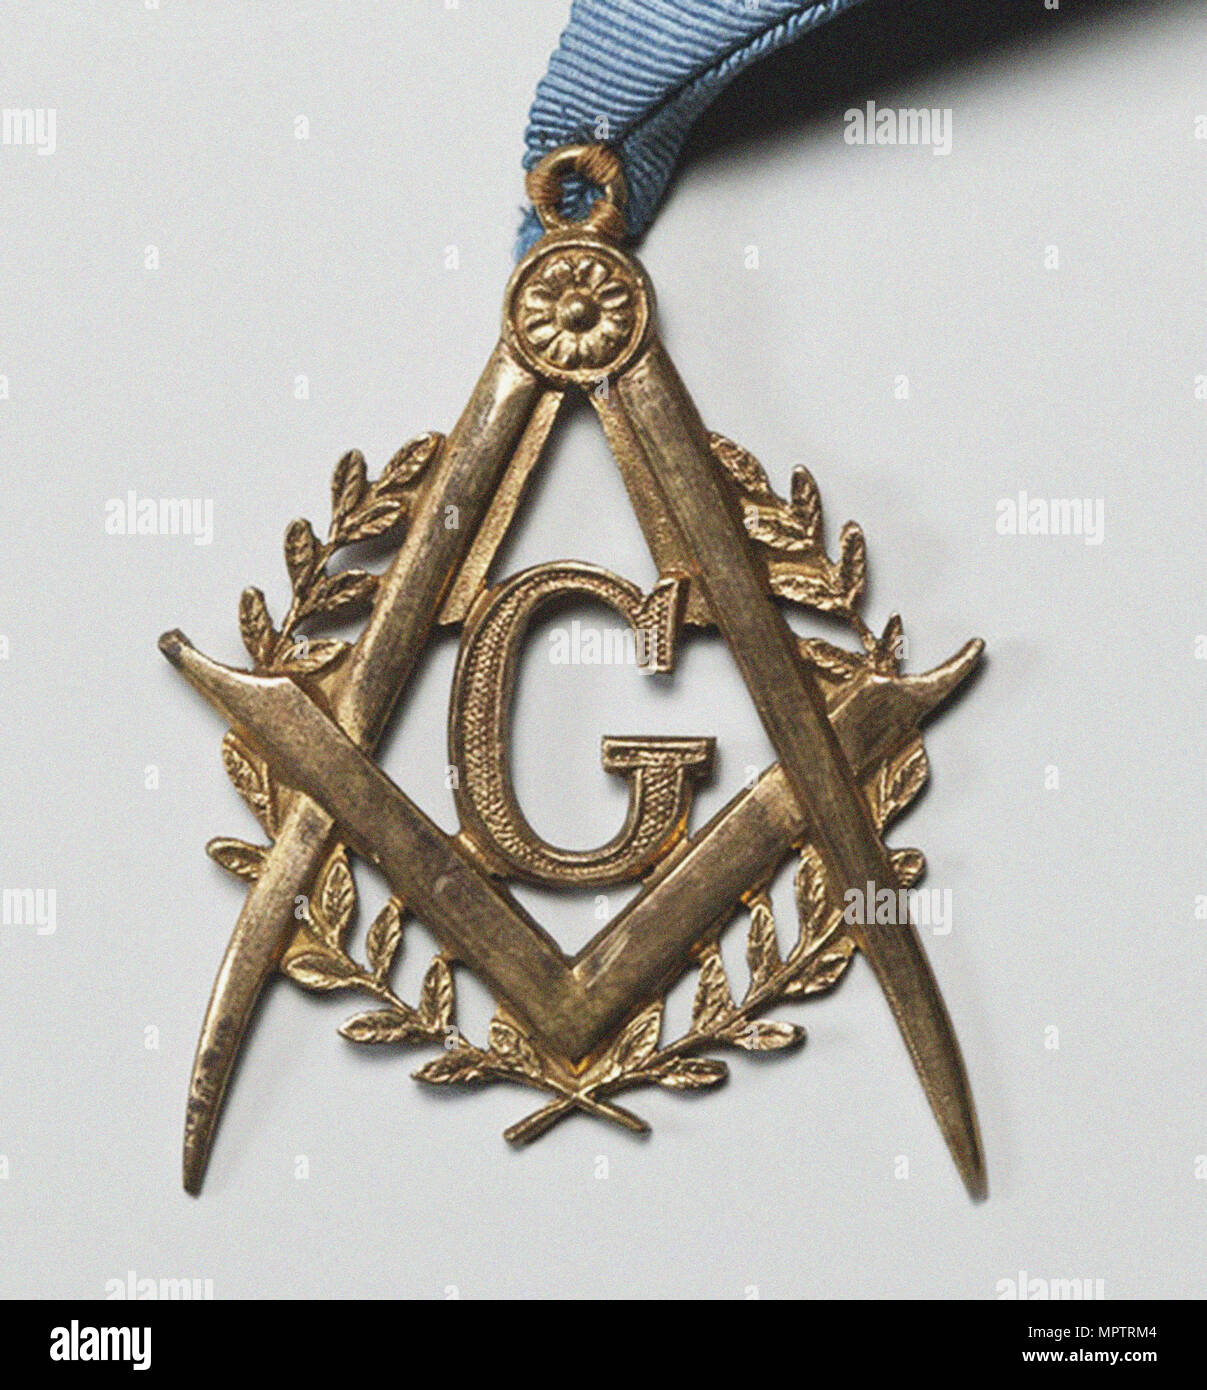 Freemason Emblem Stock Photos & Freemason Emblem Stock